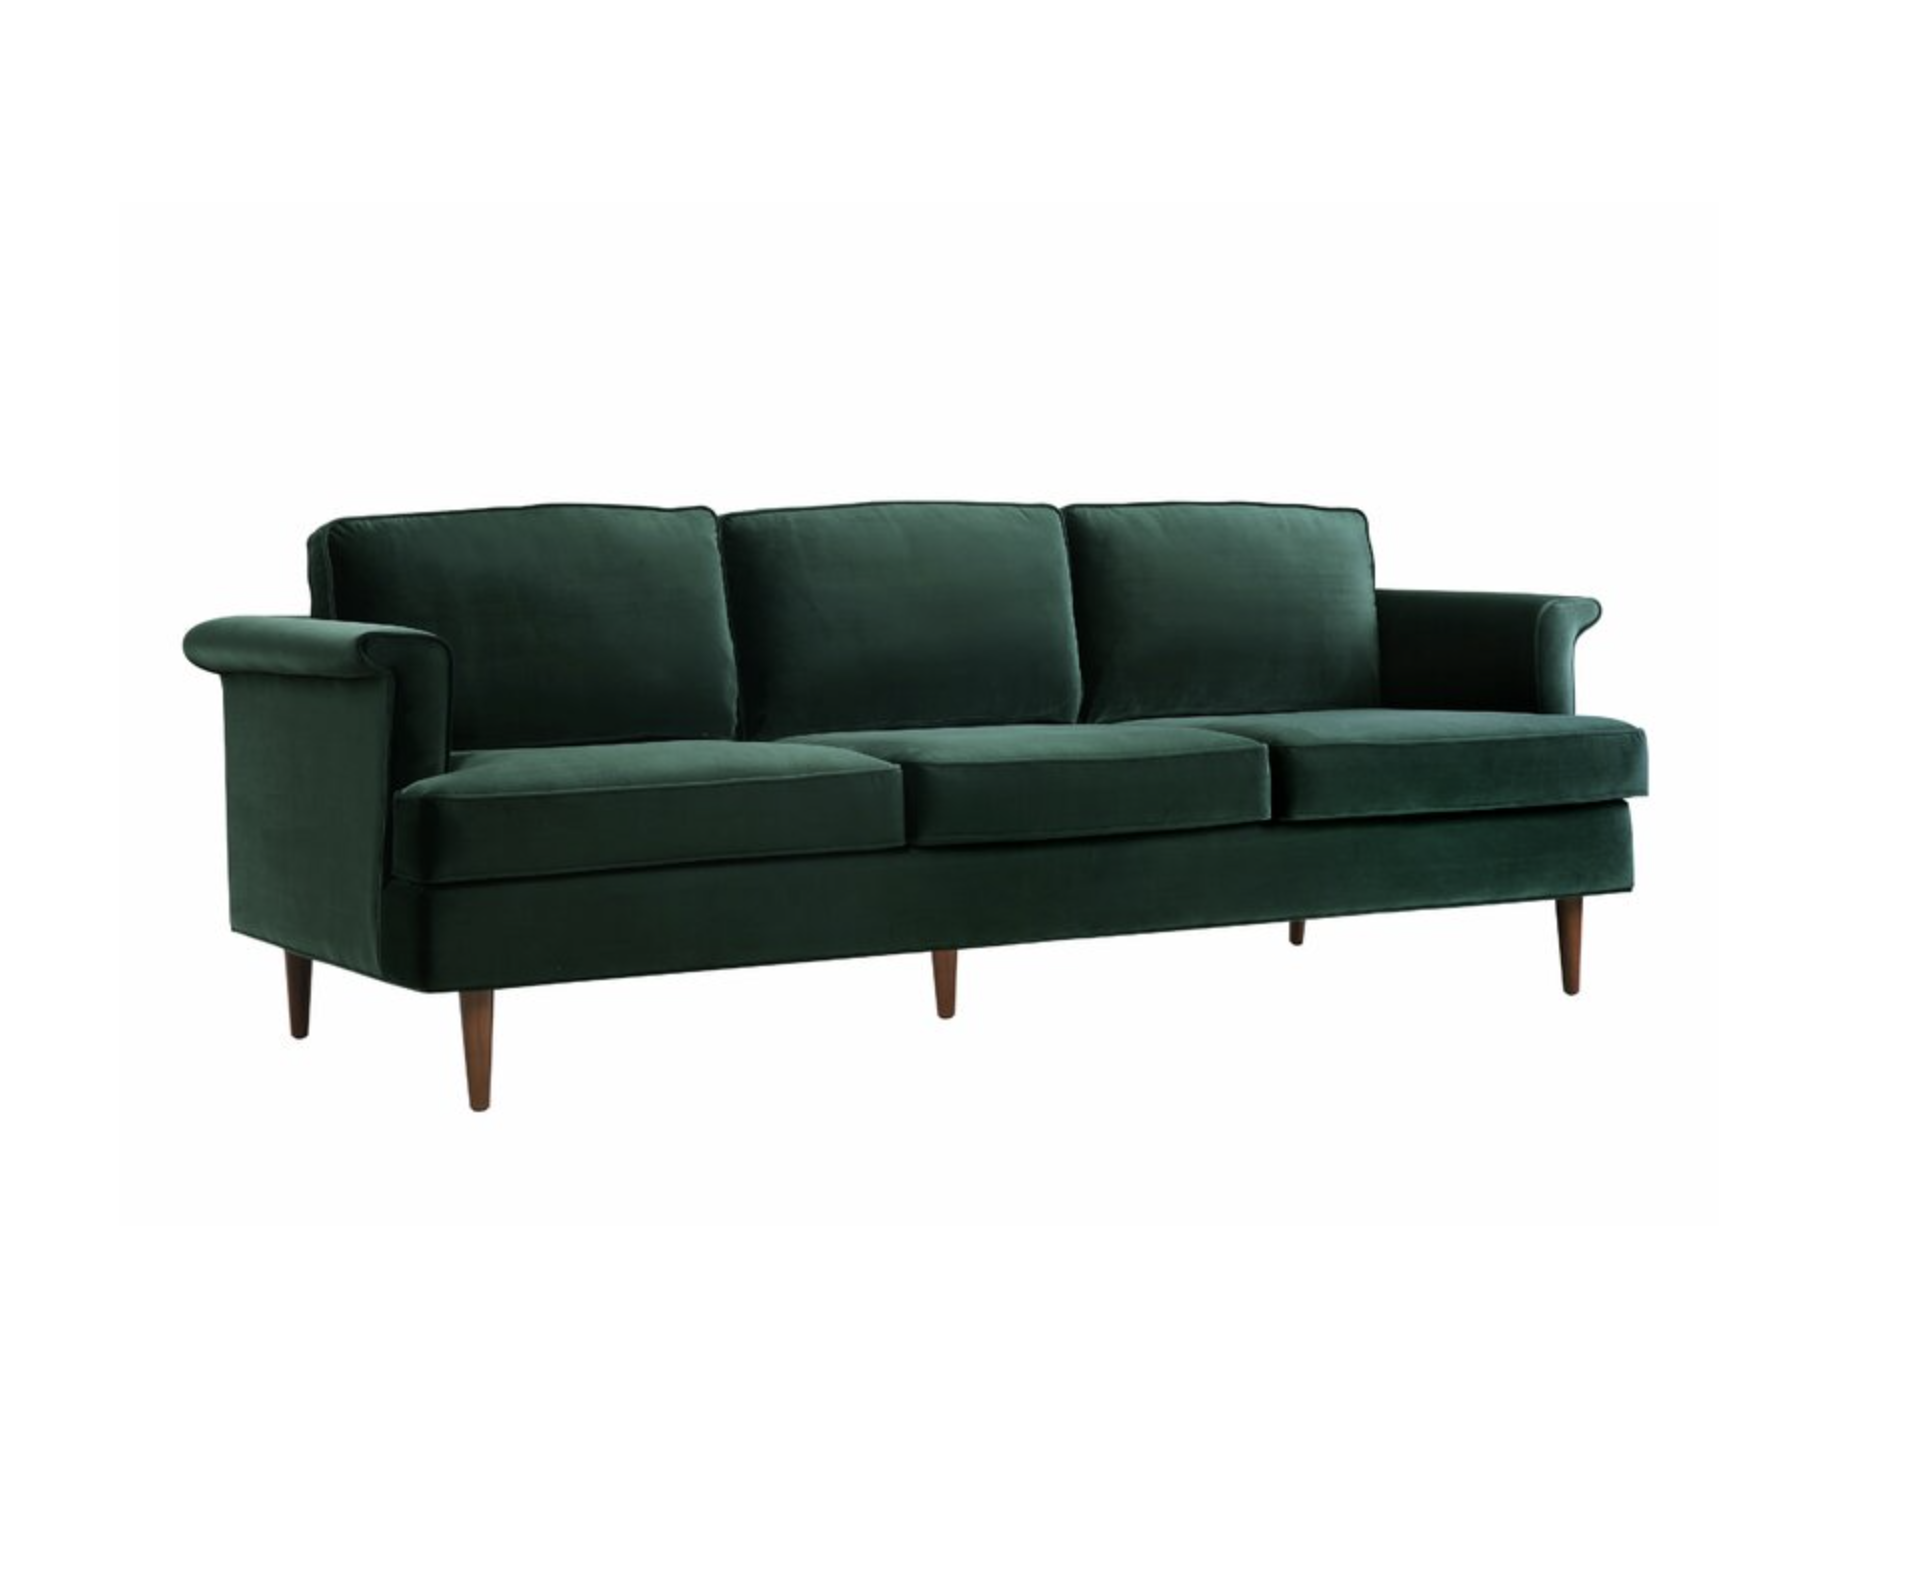 Timothy Green Sofa $300